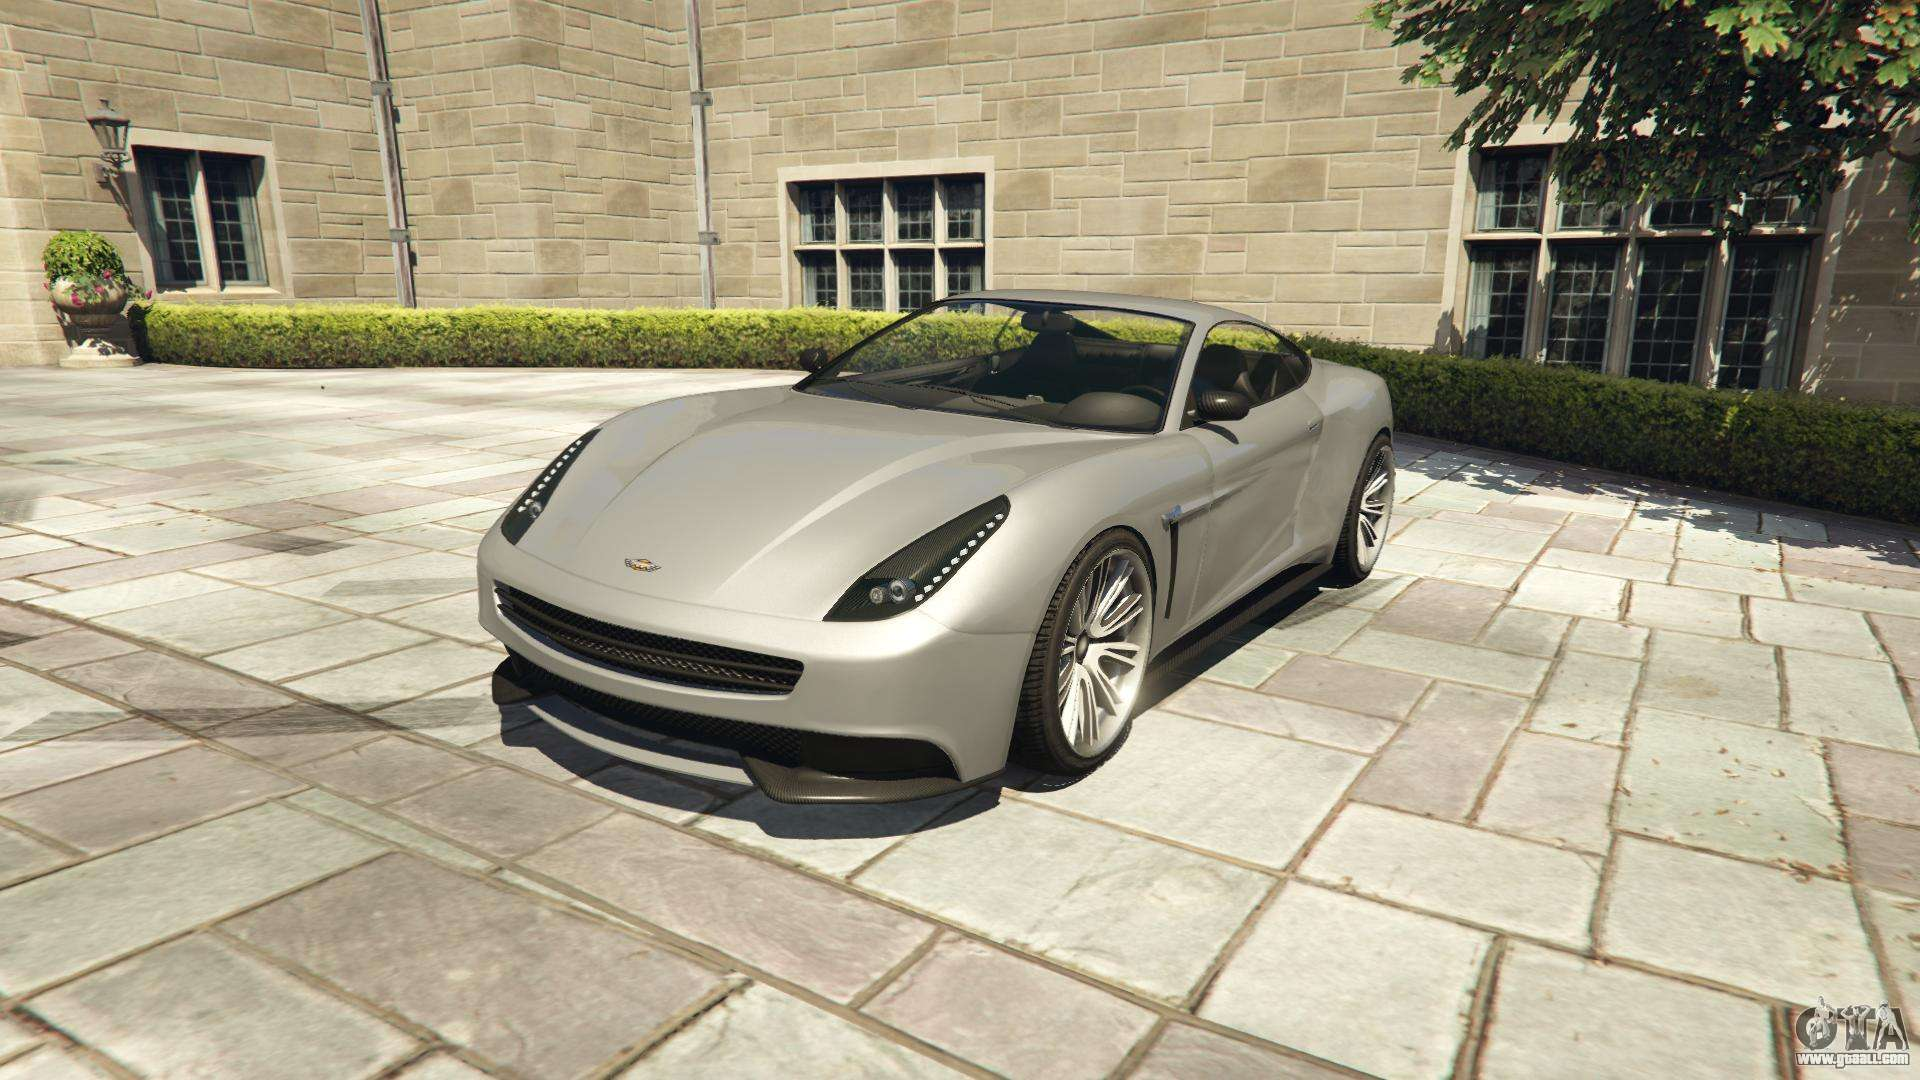 Dewbauchee Massacro GTA 5 - front view